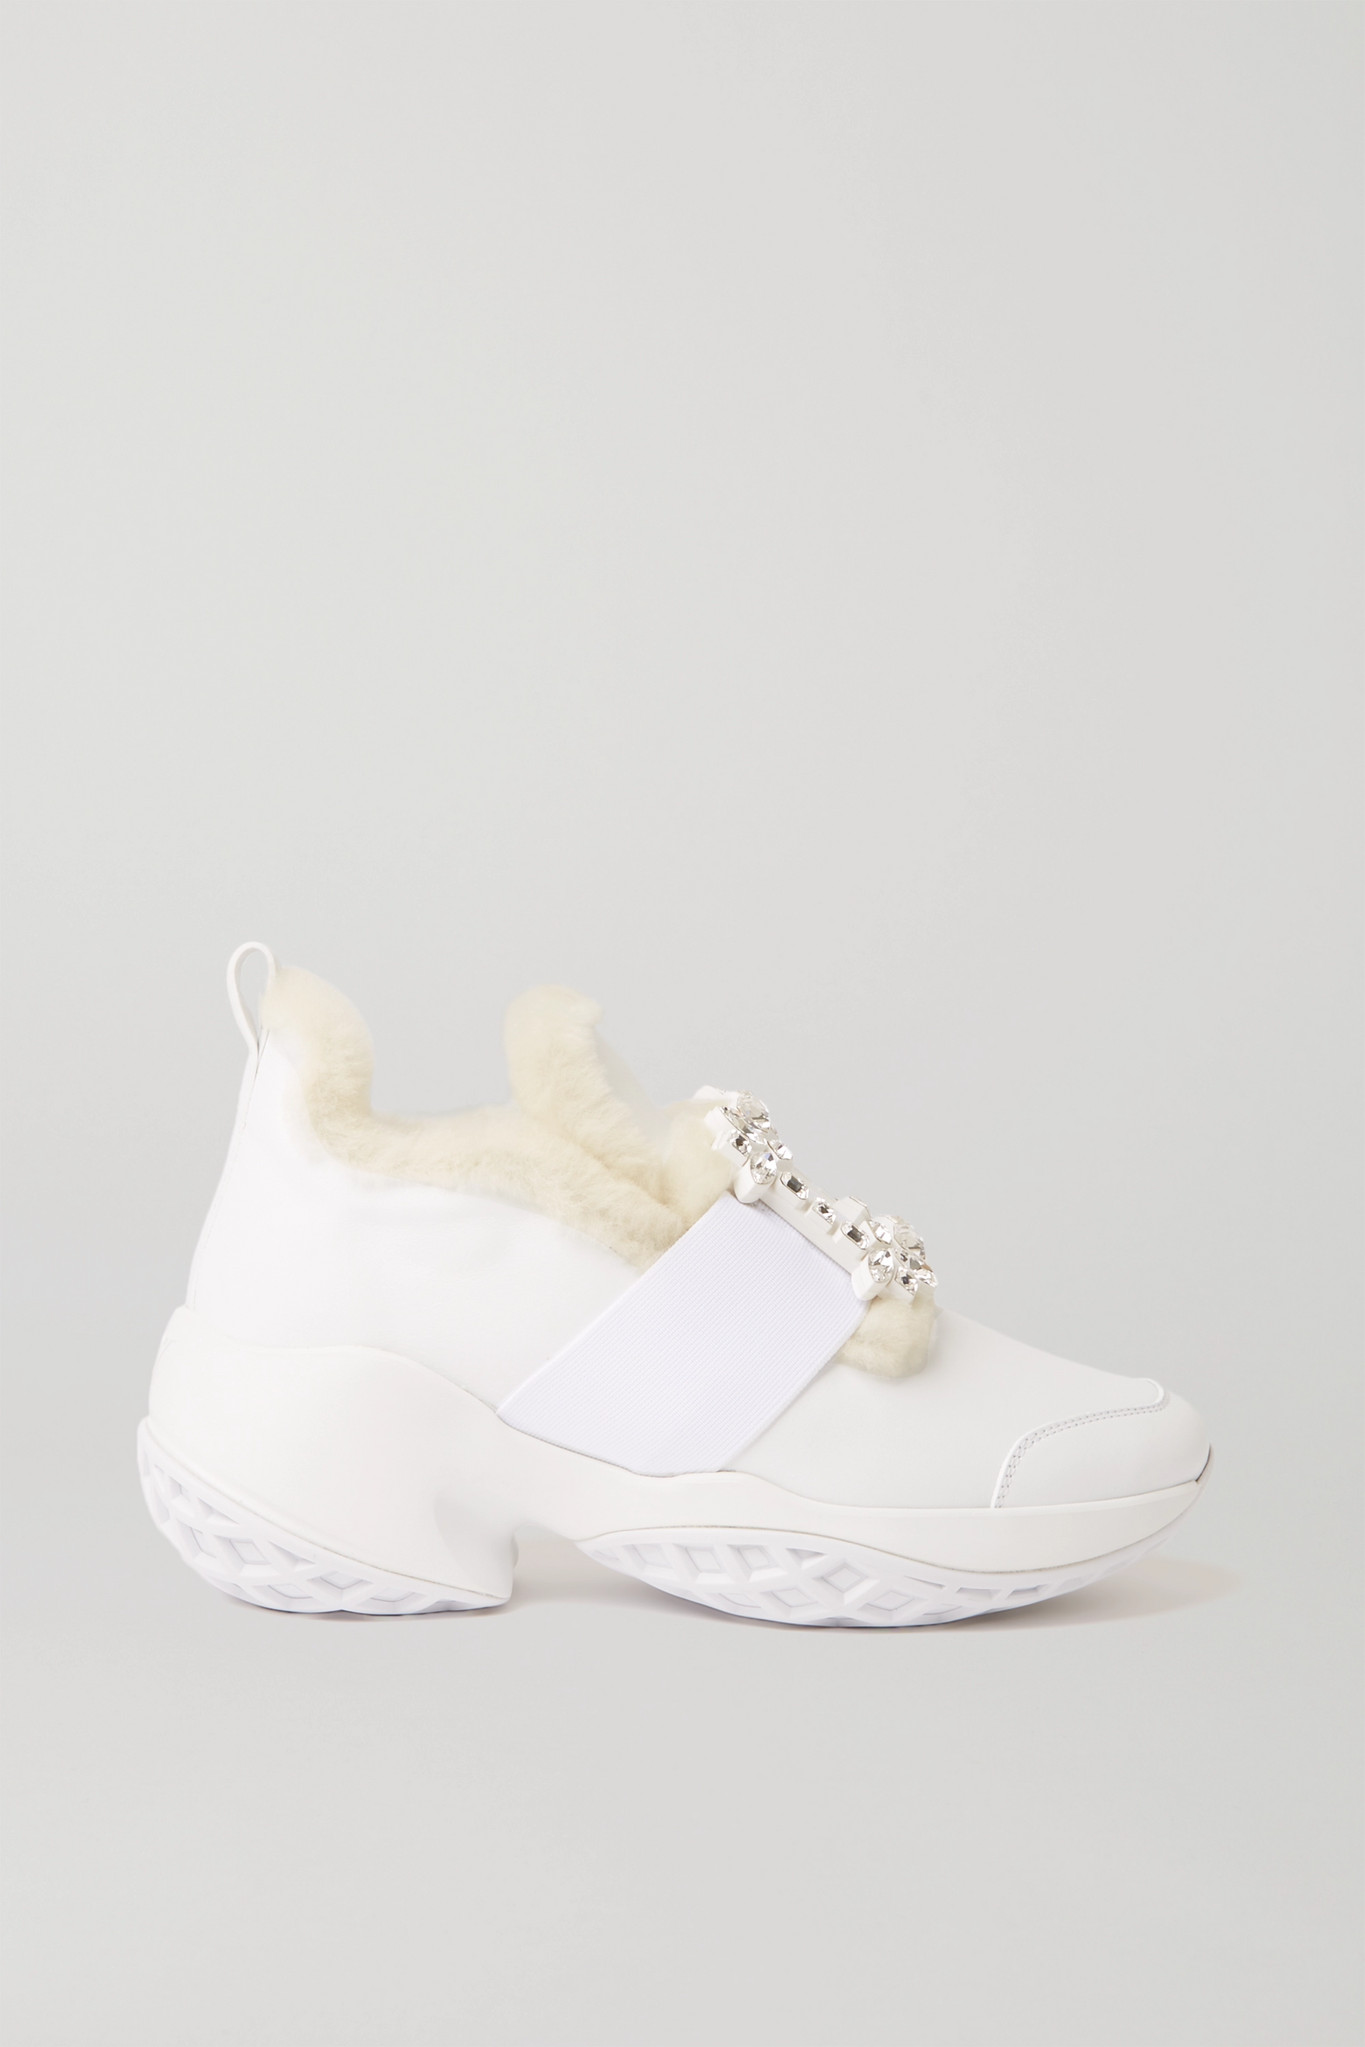 ROGER VIVIER - Viv' Run Crystal-embellished Shearling-trimmed Leather Sneakers - White - IT37.5